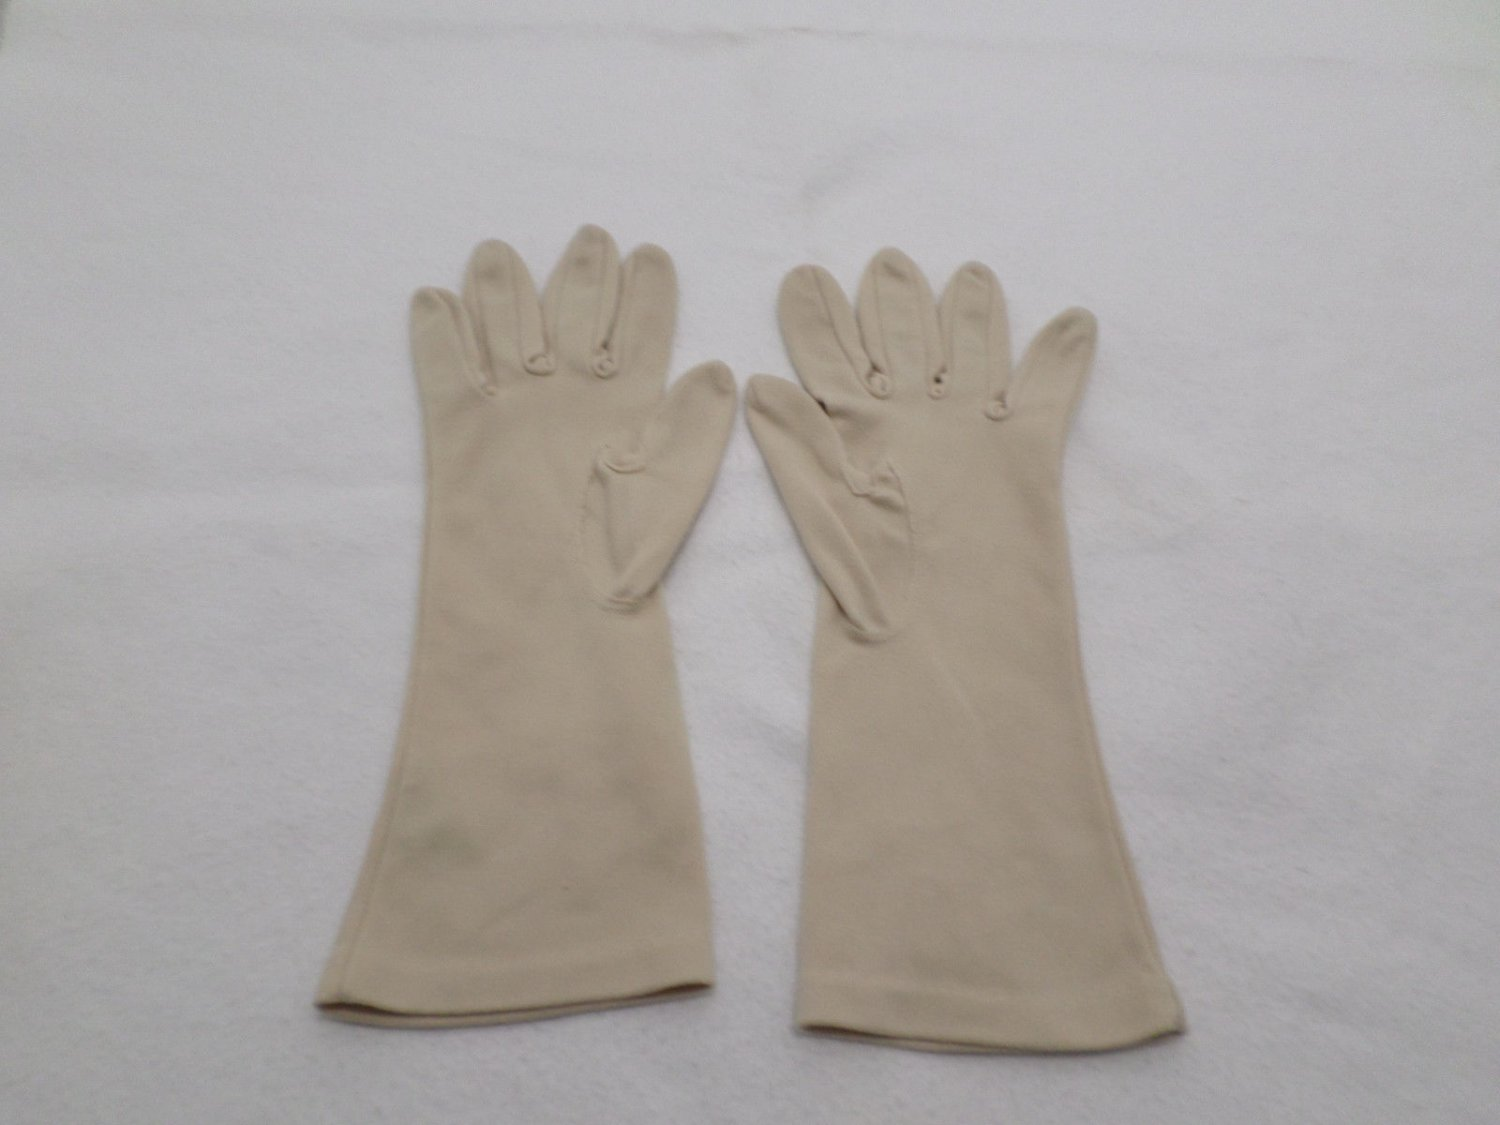 Women's Gloves Wedding Prom Party Beige size Small go Half way up arm Vintage